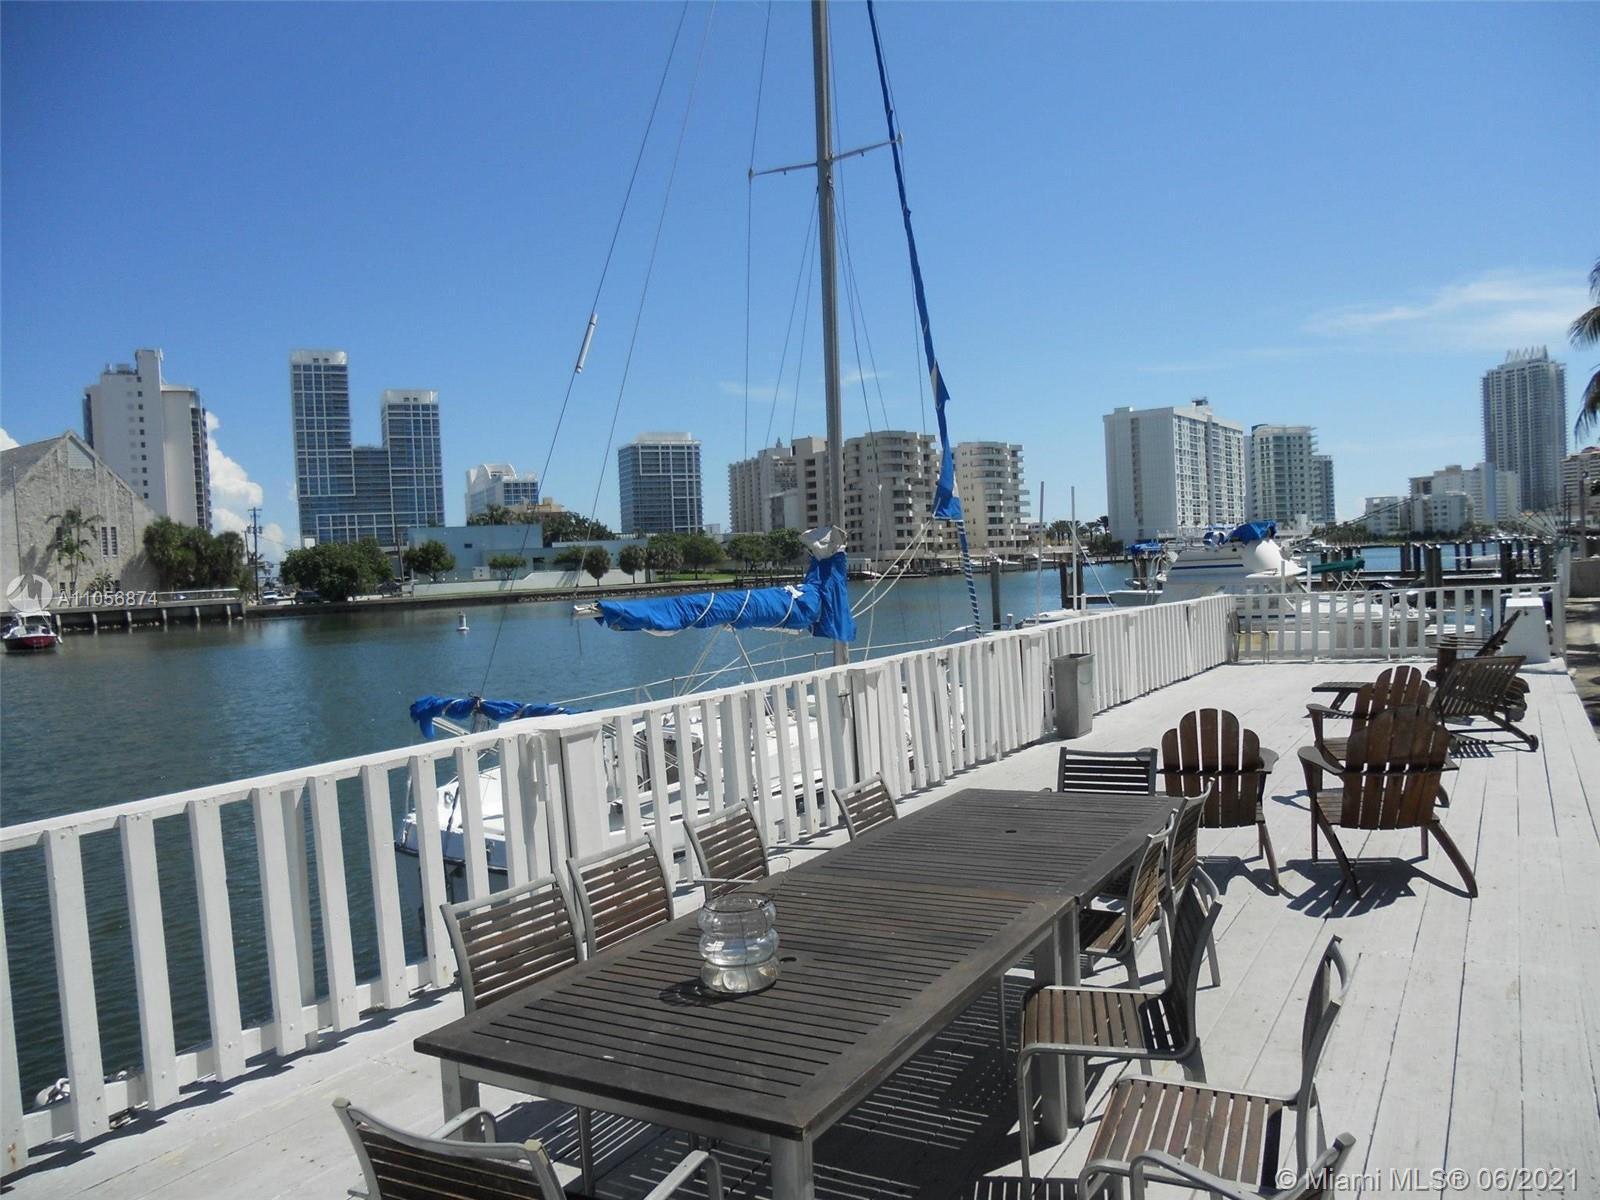 BOATERS HAVEN -- 2/2 townhome in the waterfront community of Tropical Resort Condominium in Miami Beach. A luscious sanctuary with bathrooms previously renovated with Italian tile, large master bedroom with walk-in closet and private-rooftop patio/balcony with garden view, large second bedroom, and a large living/dining room with access to the back and front patios. The unit is spacious and improved with Italian terracotta tiles on the first floor and bamboo floors on the second floor. Ample amounts of natural sunlight, and a European-style kitchen with all necessary appliances. This quaint waterfront community includes access to a waterside dock on the intercoastal, a swimming pool with lounge chairs, and laundry facilities on site. TV Room could be converted to a third bedroom.